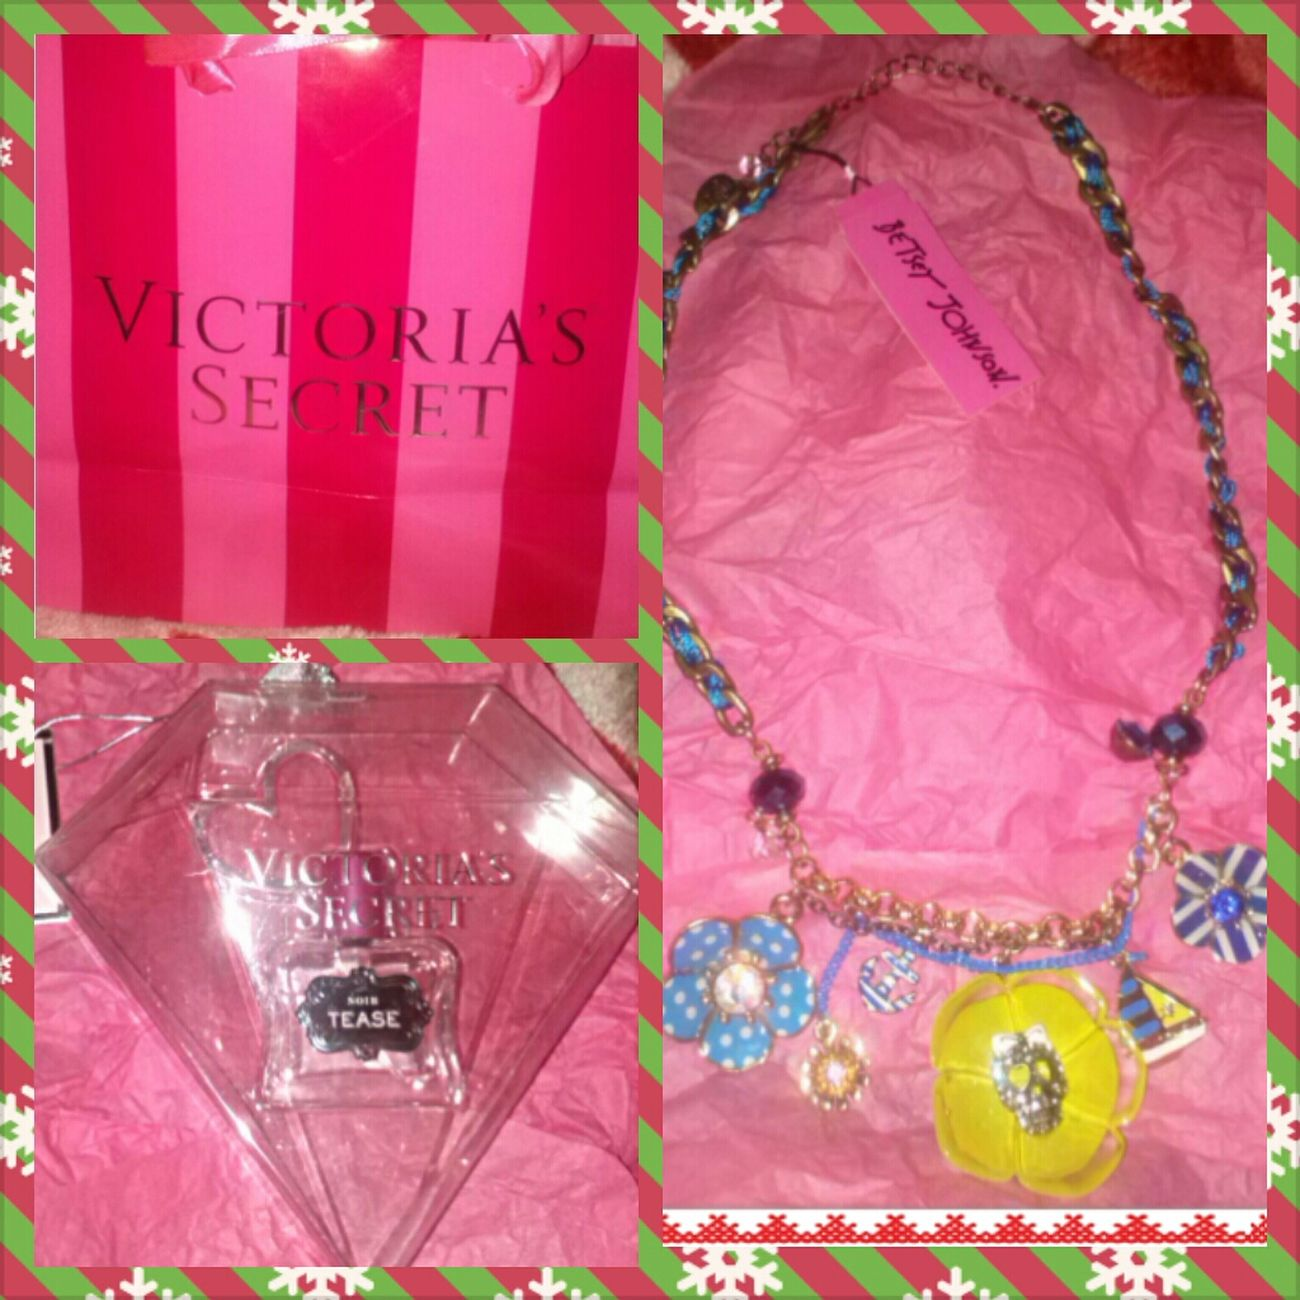 Christmas Perfume Jewelry Husband Victorias Secret Betsey Johnson